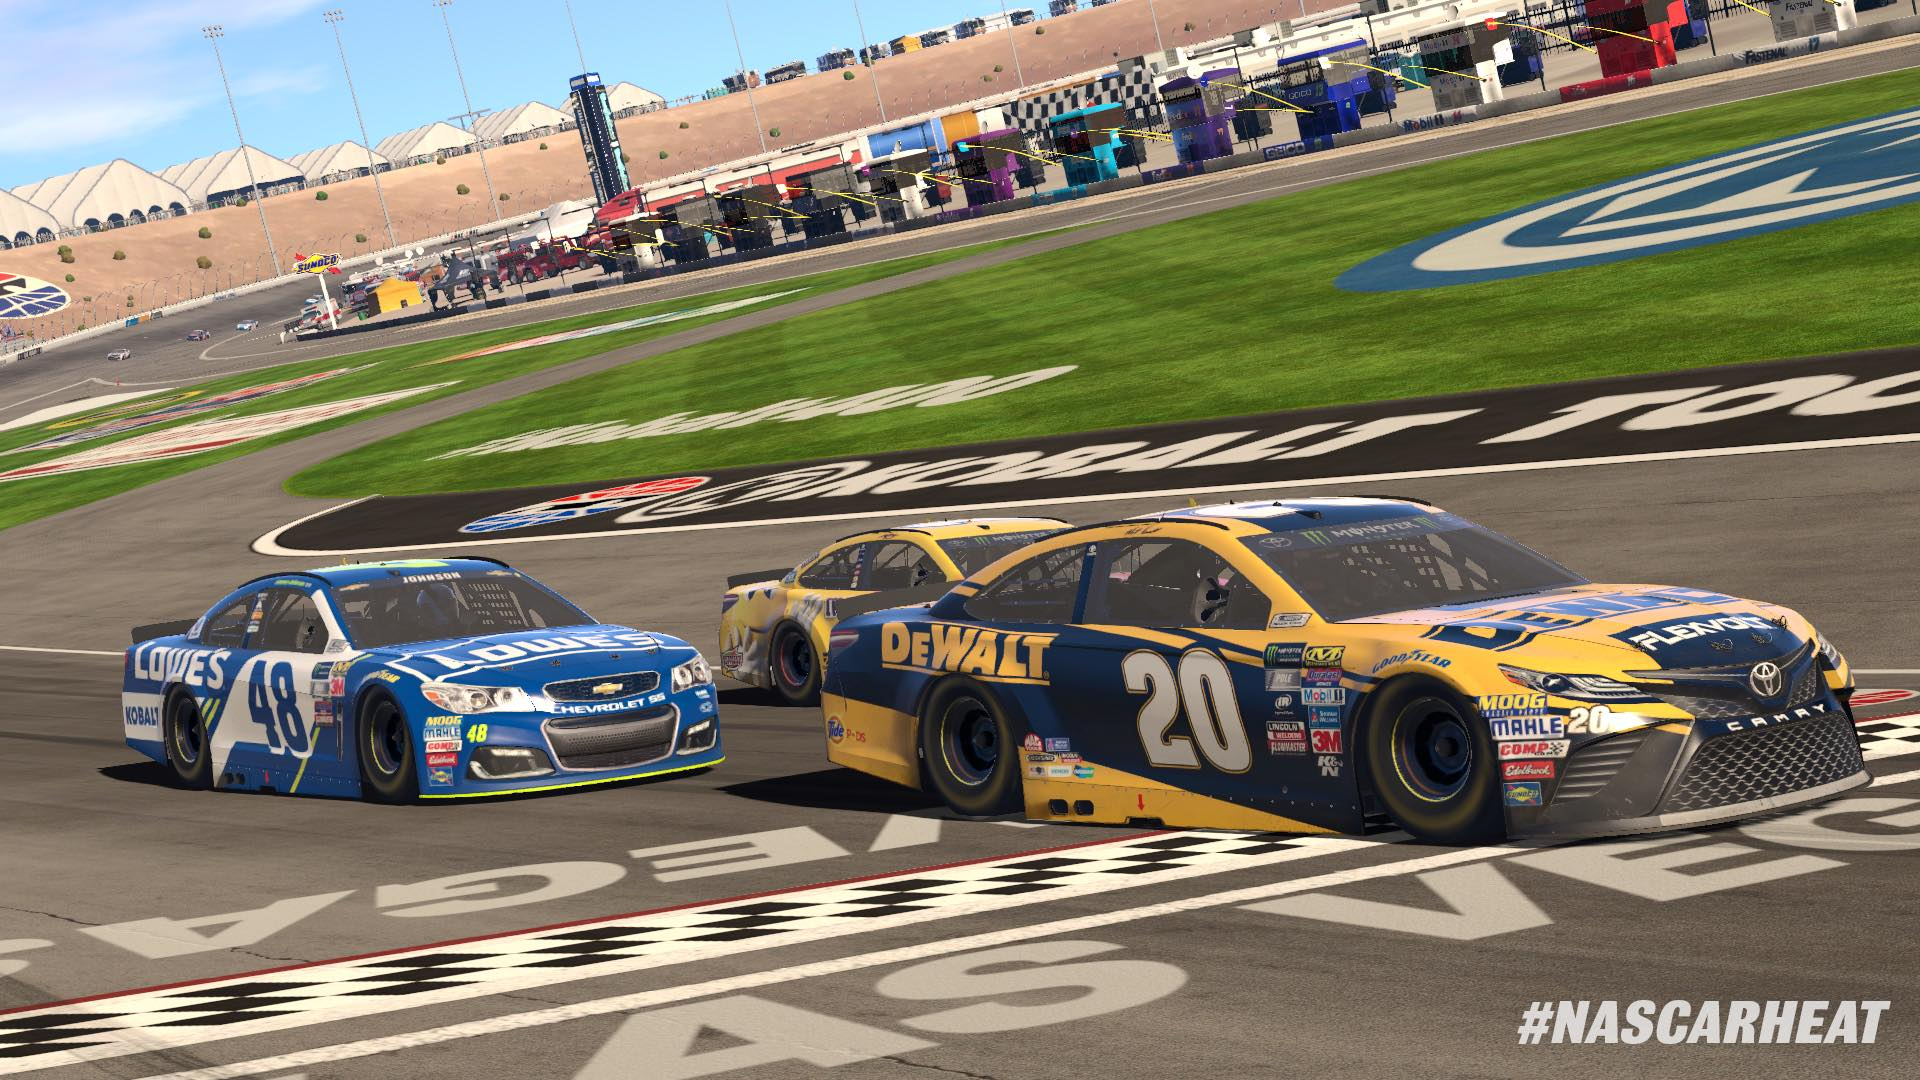 new release car gamesDMR rebranded as 704Games to release two new NASCAR games in 2017